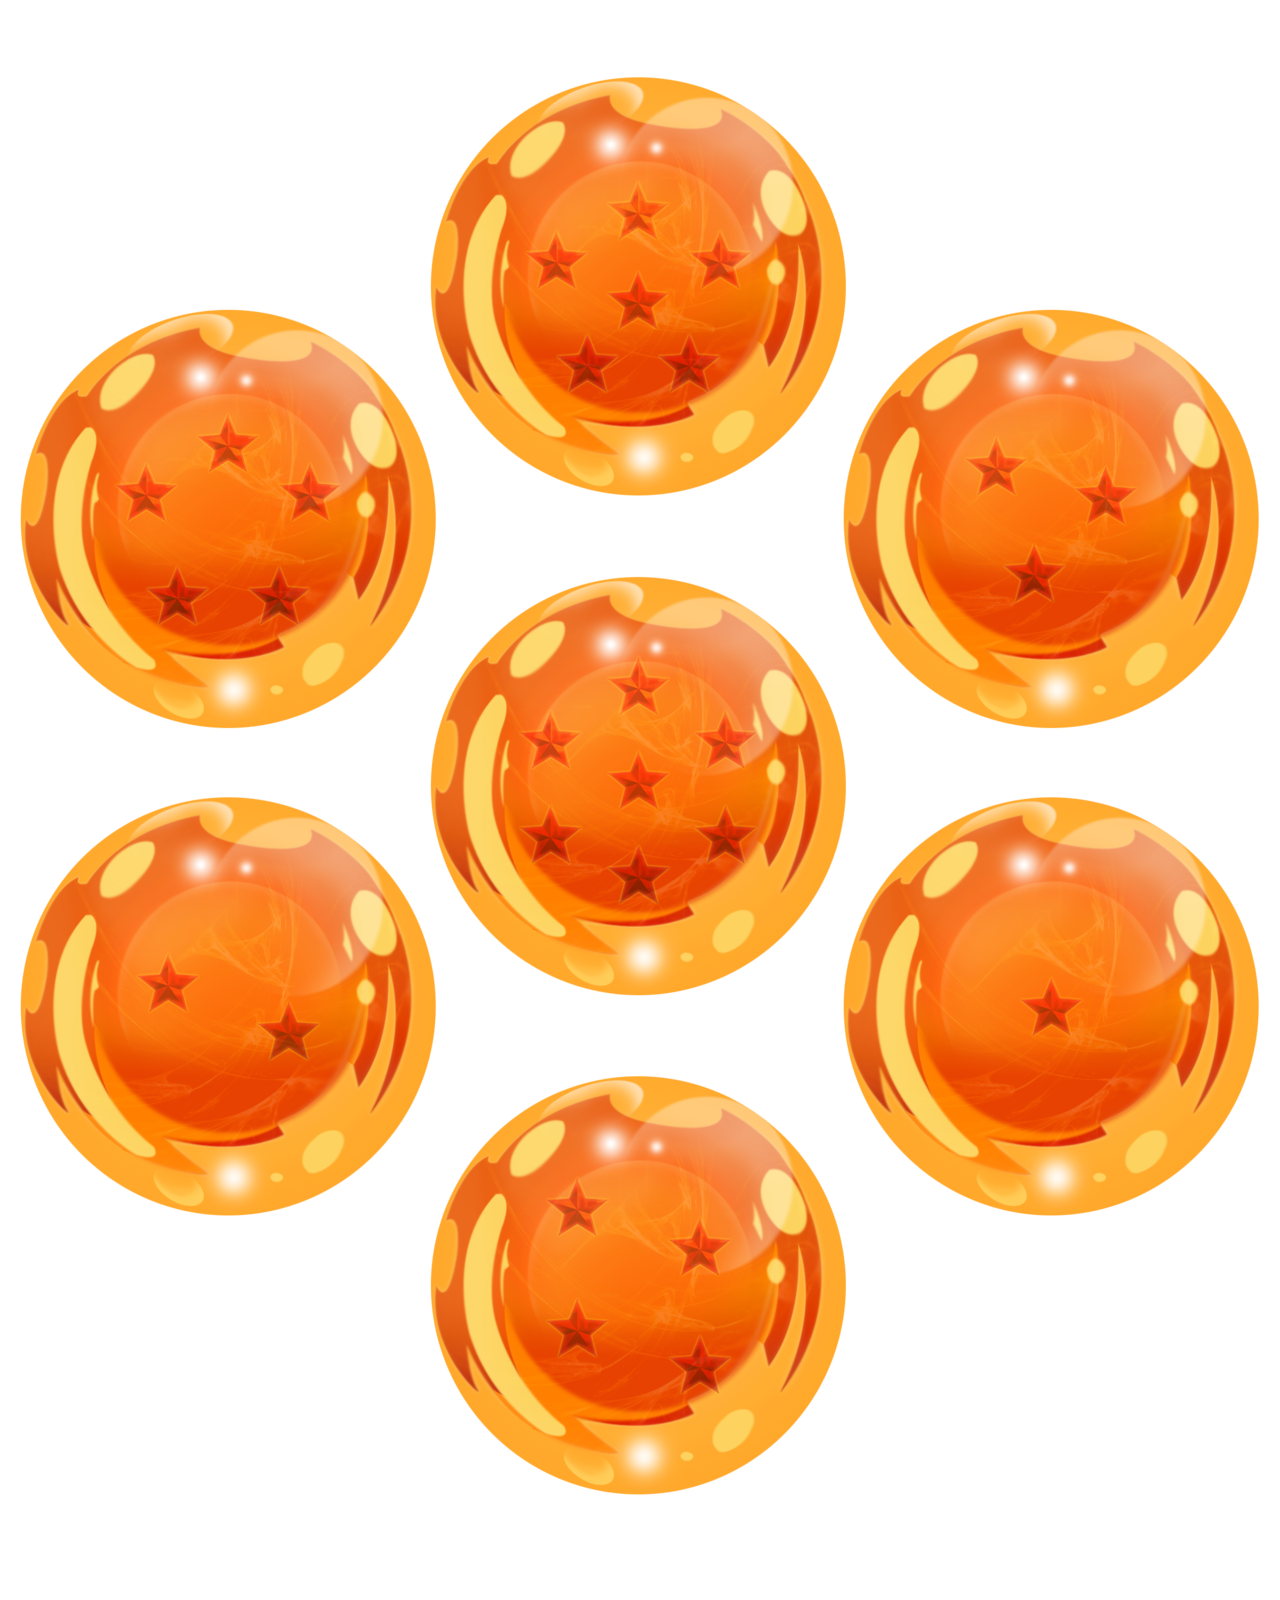 dragonballs_for_you_by_ruga_rell-d5aelw8.png